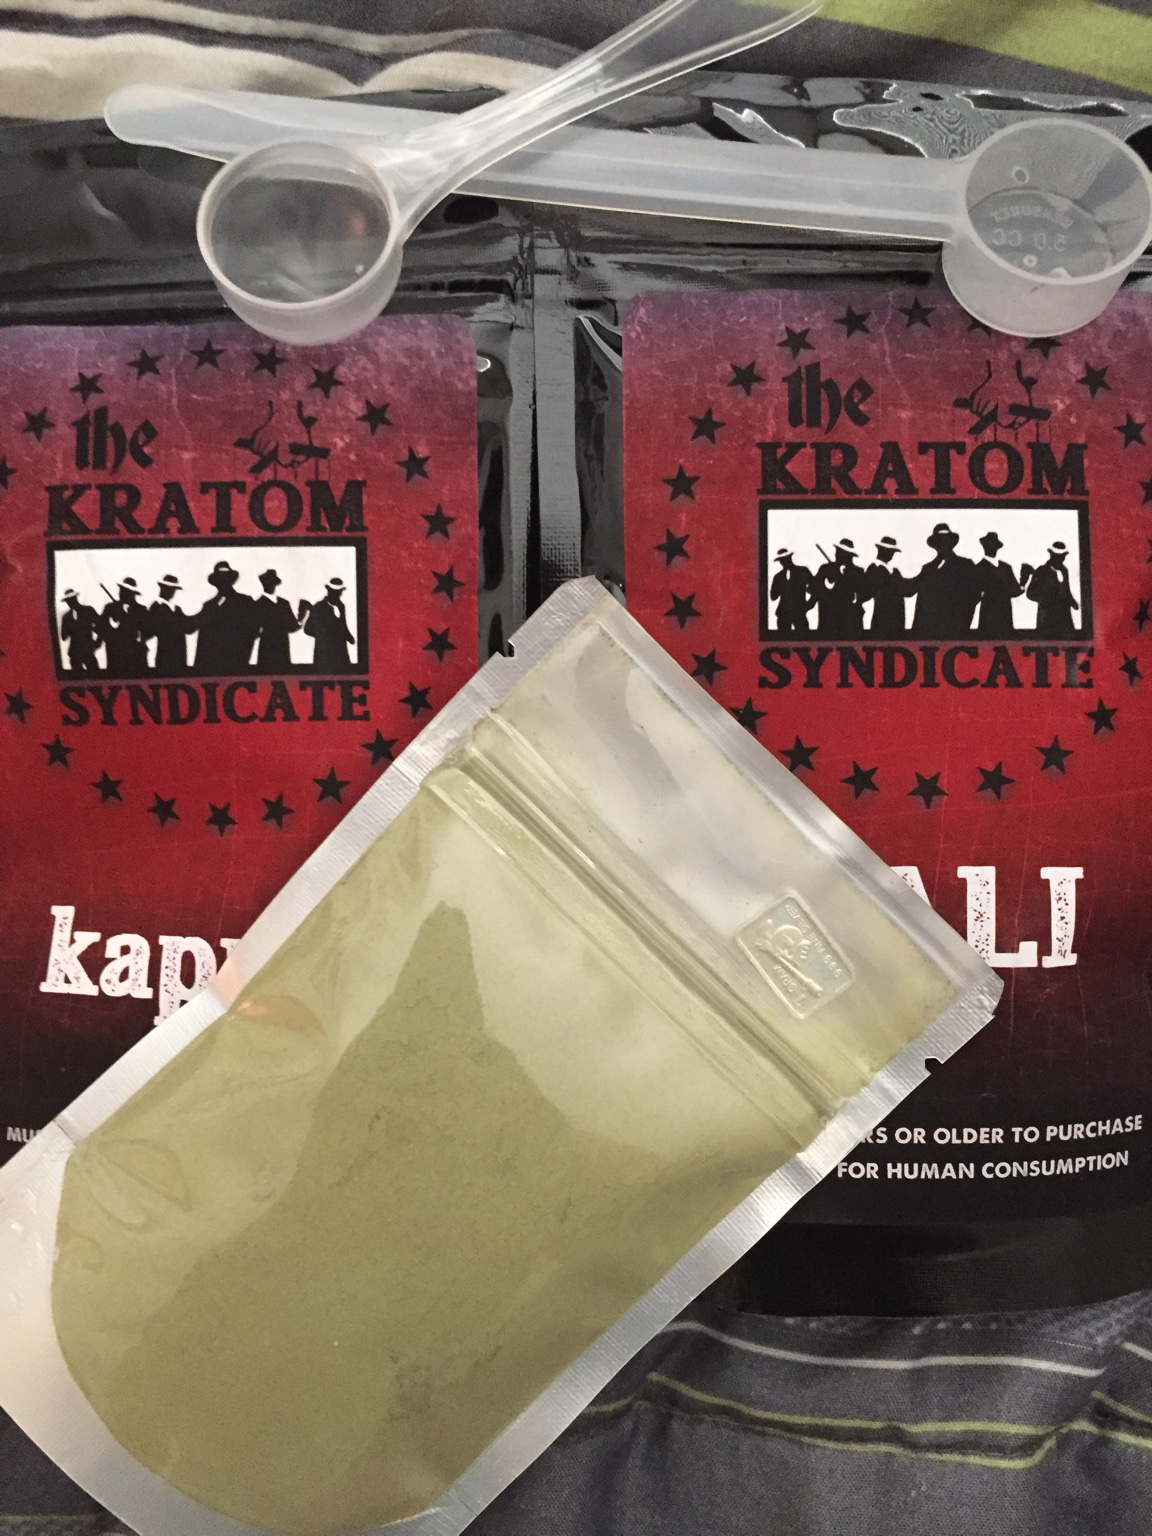 Kratom hippie blend reviewed by jim bob at whiskey drankers